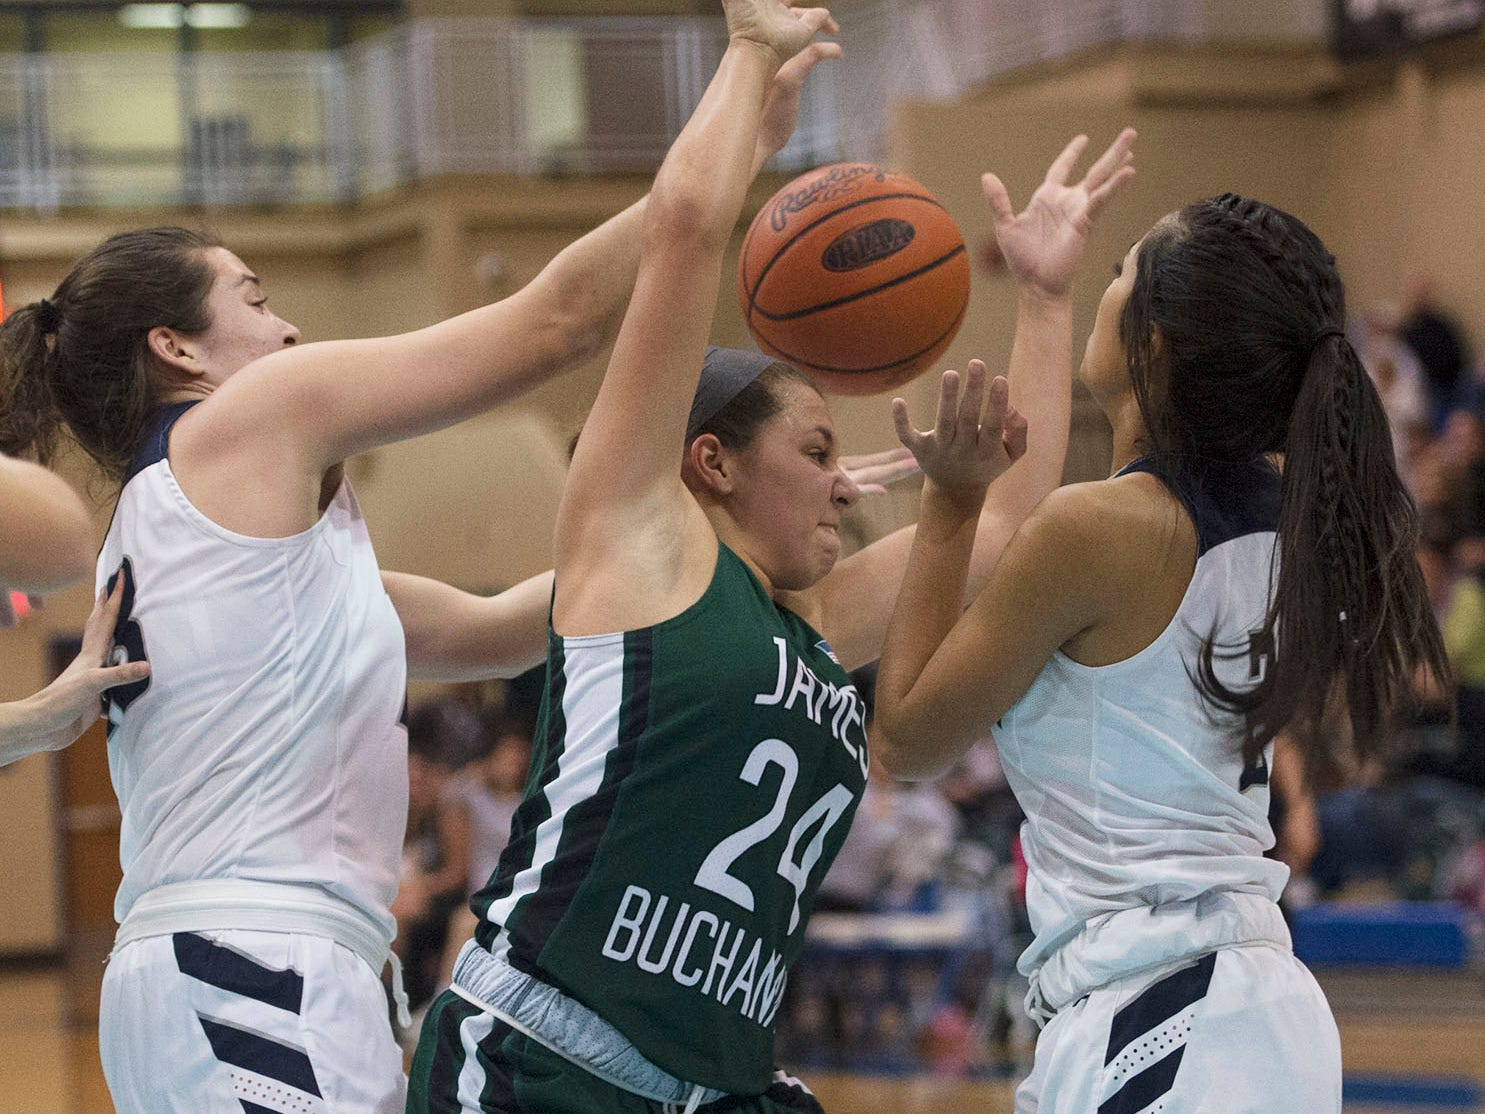 James Buchanan's Alyssa Blair (24) tries to rebound against Trojans players. Chambersburg played James Buchanan girls during the Franklin County Tip-Off Tournament, Friday, Dec. 7, 2018.